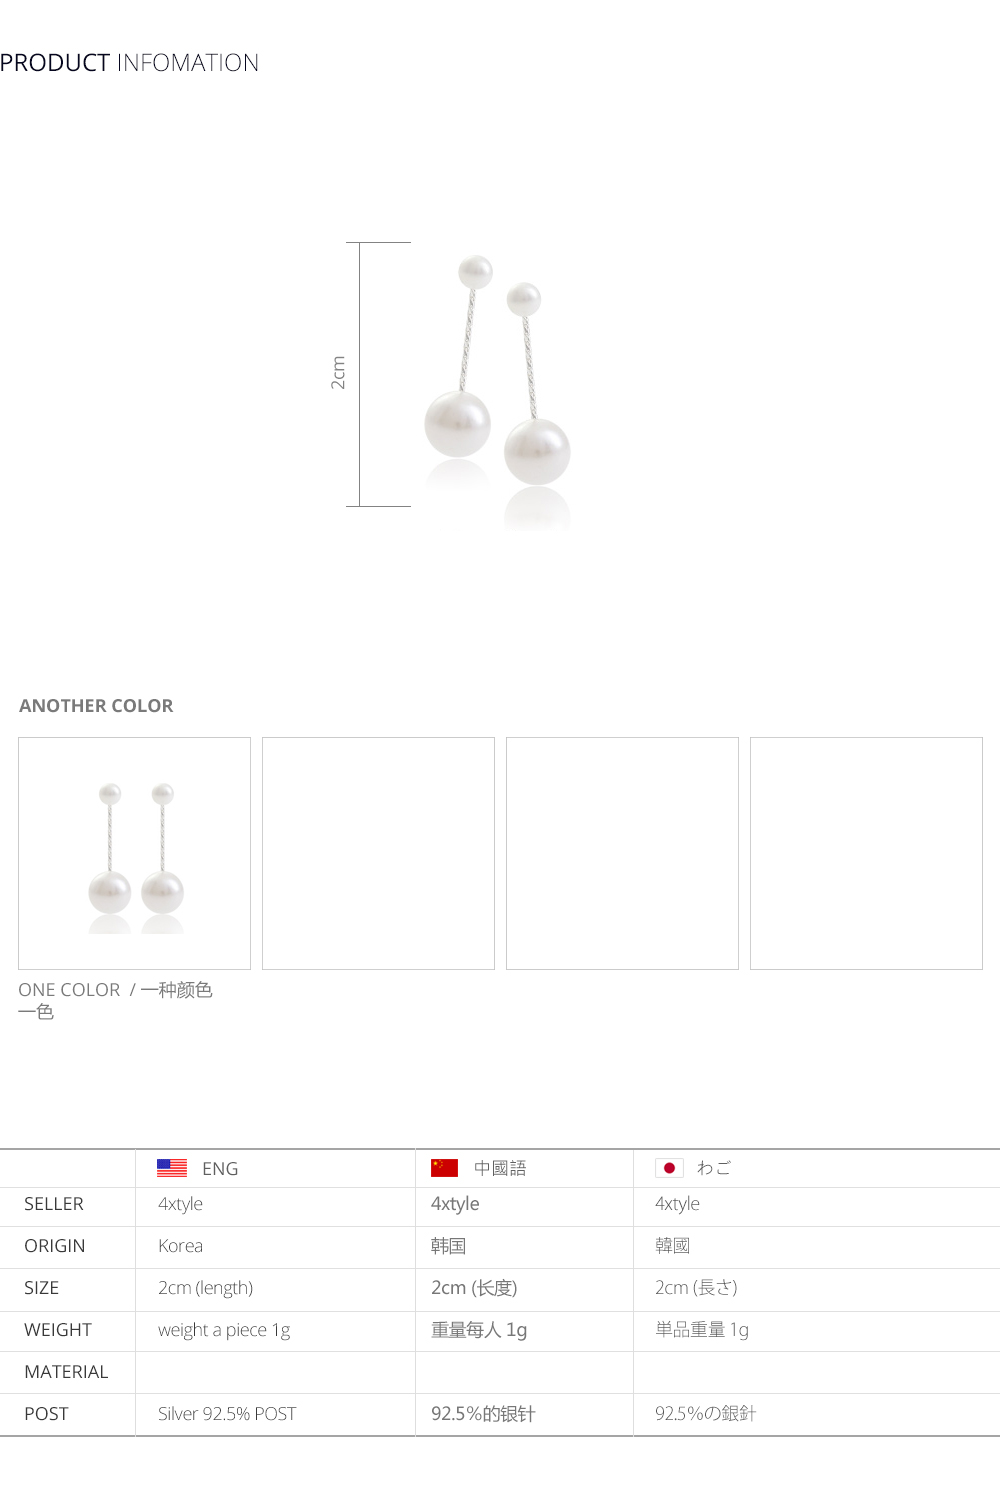 [ 4xtyle ] Pure Twin Pearl Silver Earring, One Color